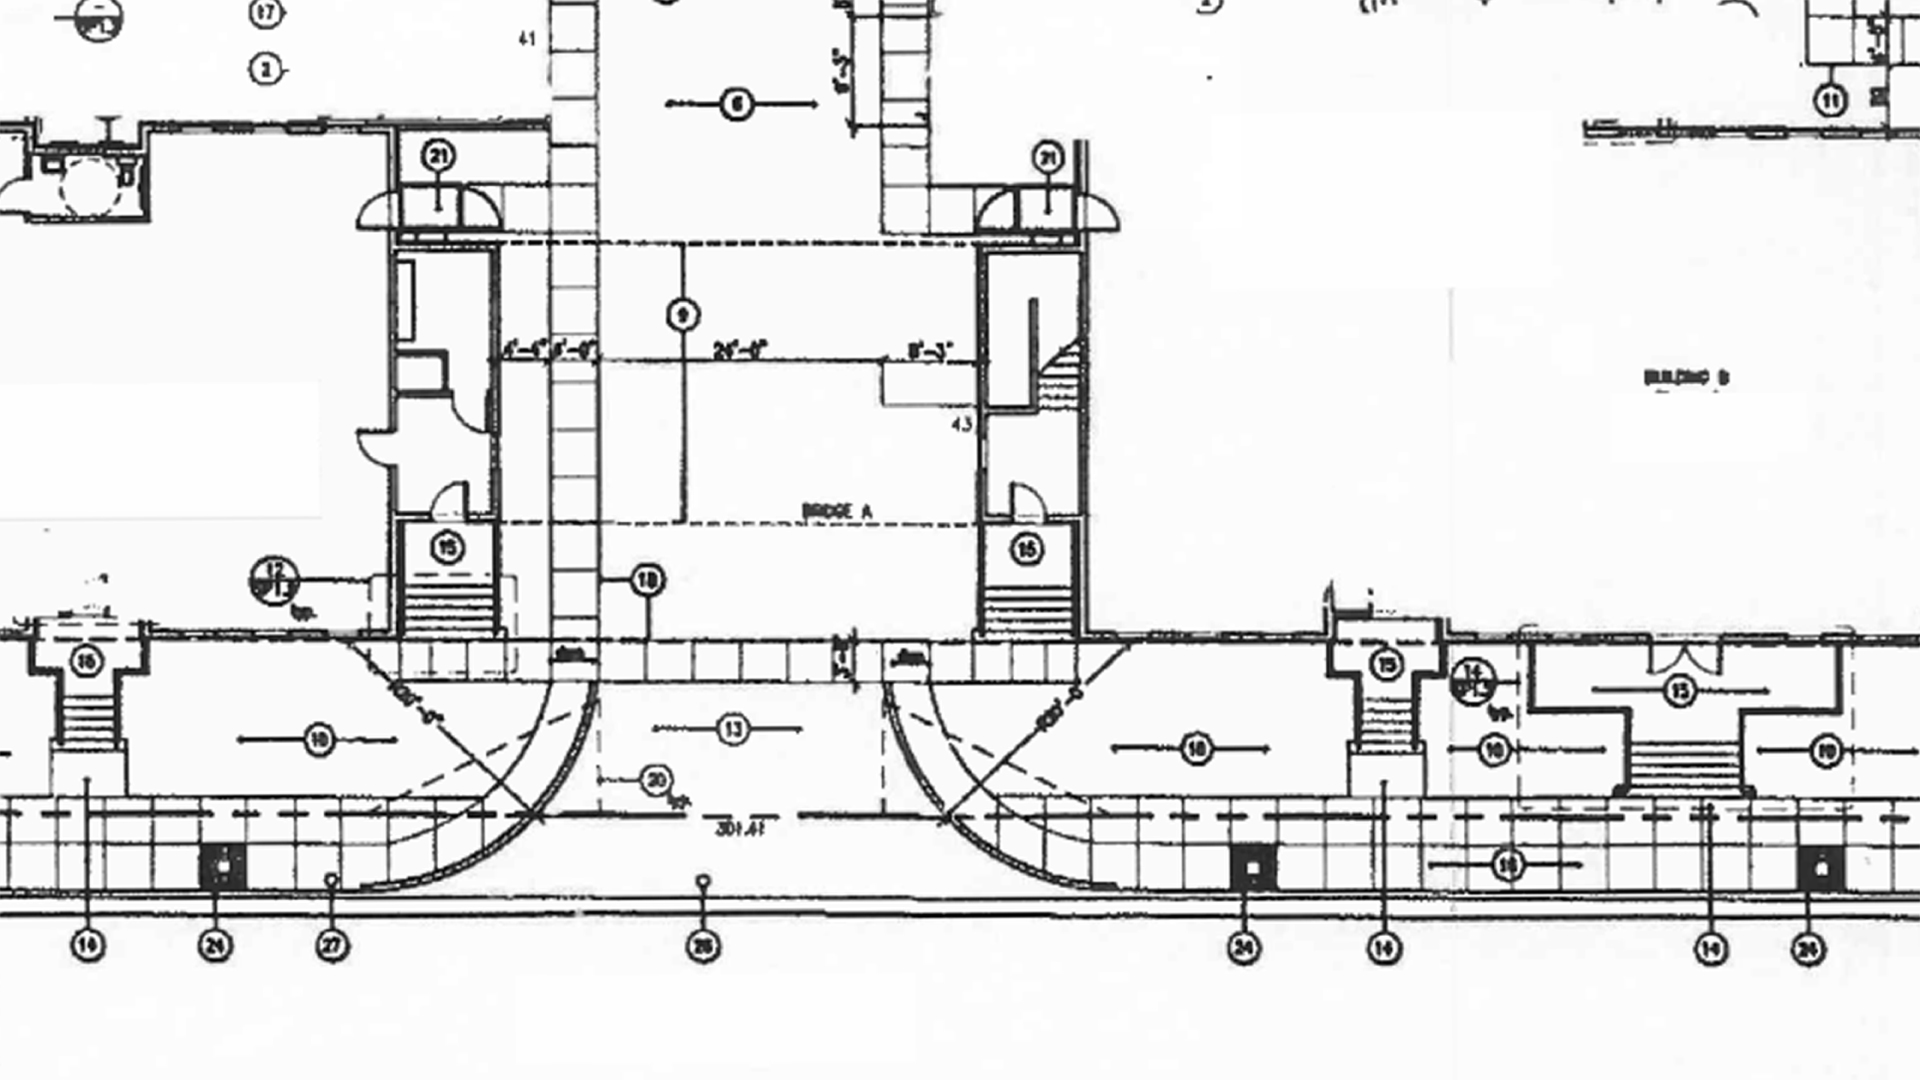 Piping Layout Drawings Download